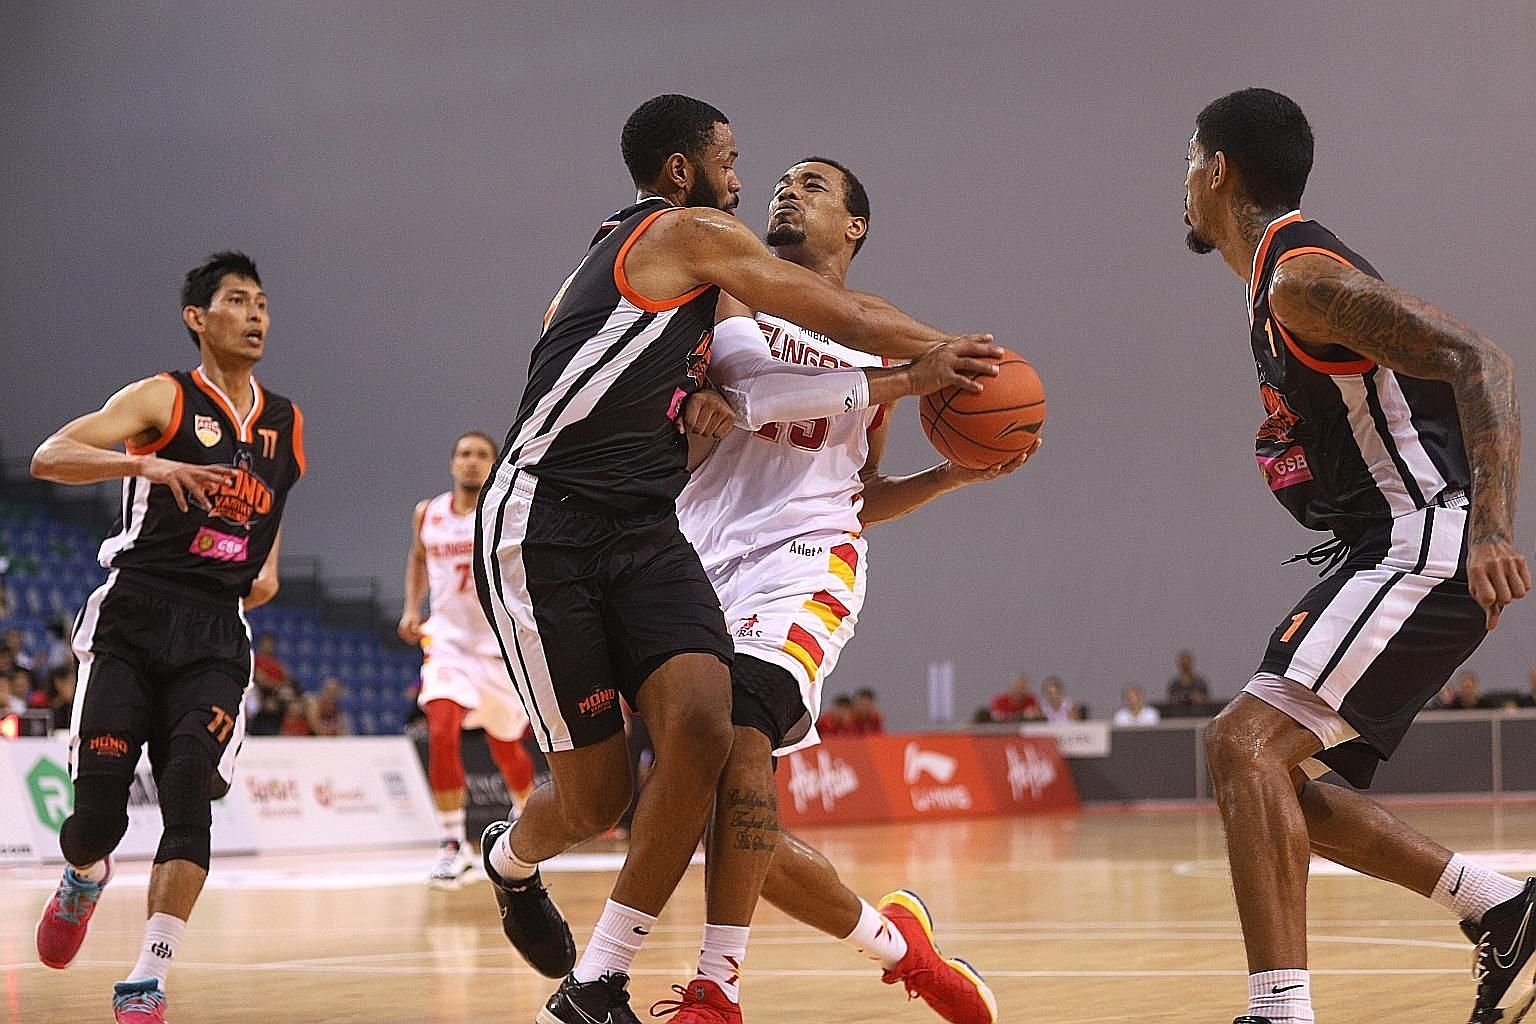 Slingers forward Xavier Alexander battling to retain possession during the ABL game against Mono Vampire at OCBC Arena yesterday. He took the final shot of the game and, while his two-pointer fell through the hoop, he did not get it off in time.